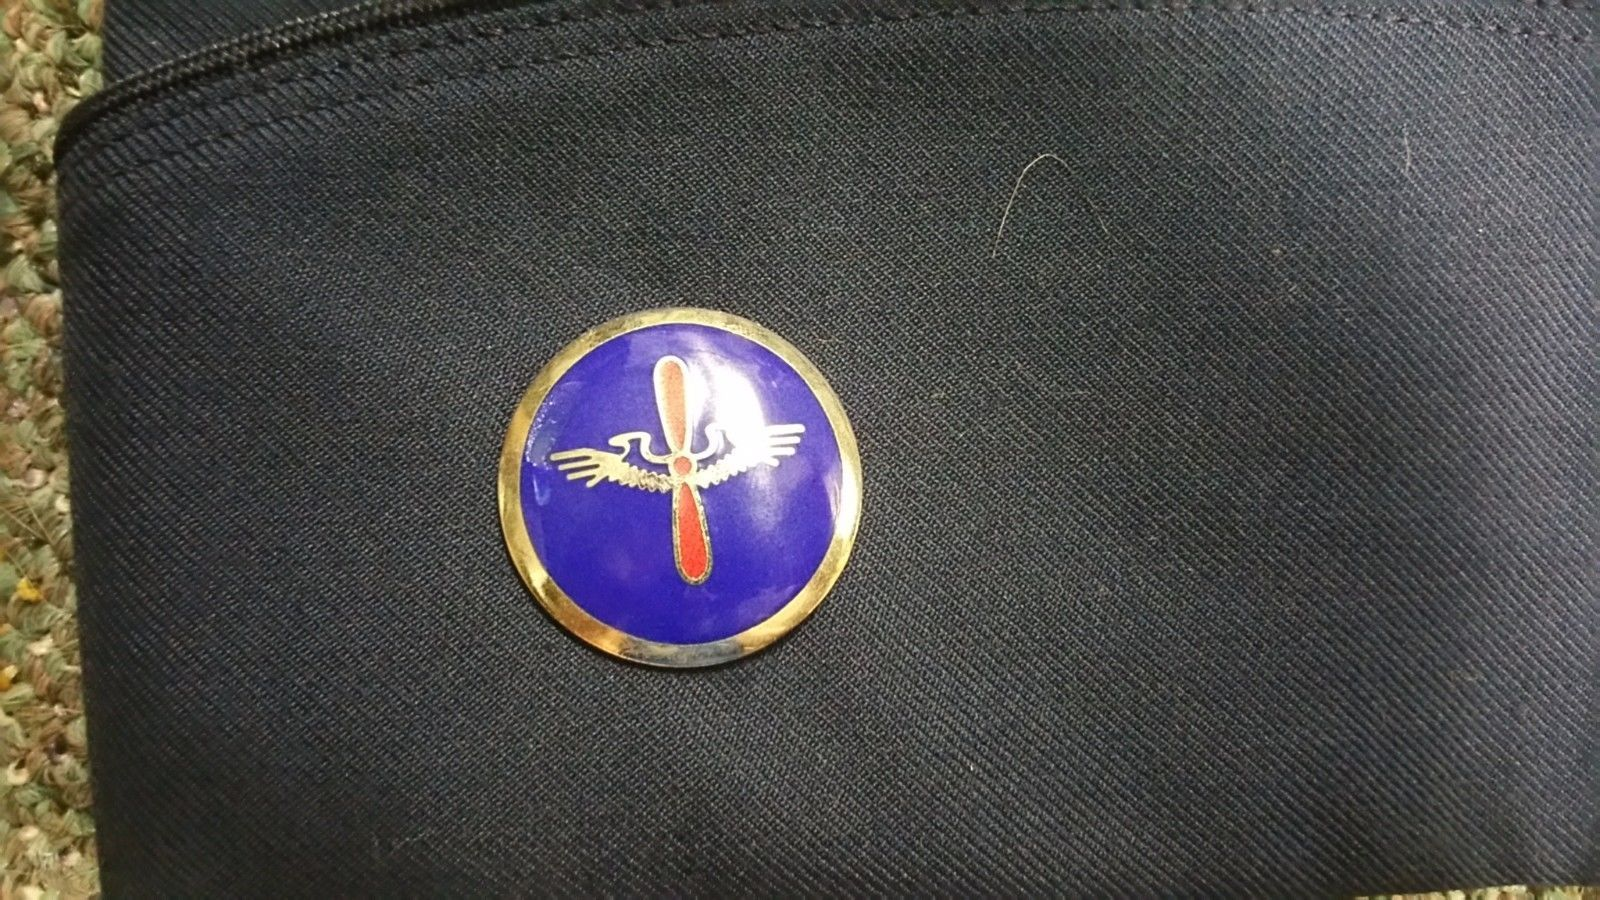 US $15.00 Used in Collectibles, Militaria, Surplus